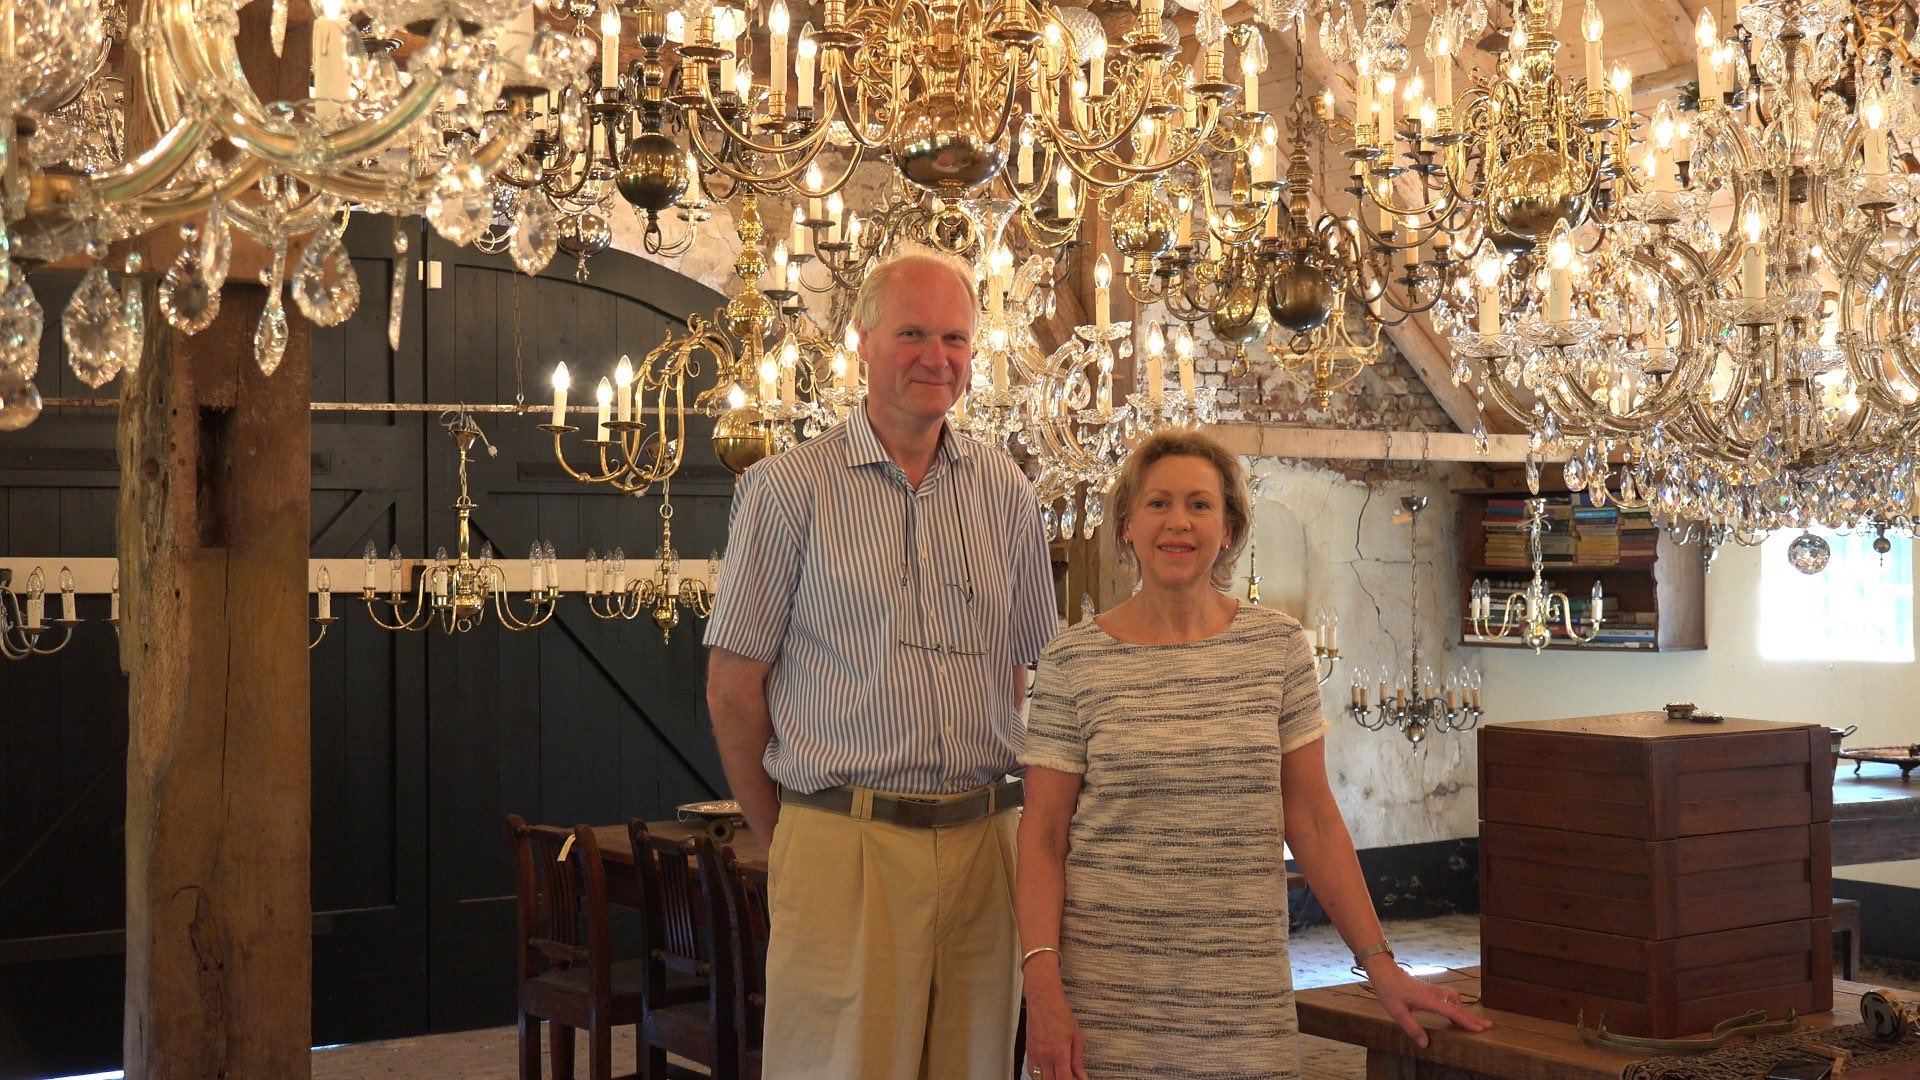 Antieke kroonluchters, antique chandeliers, antike kronleuchter